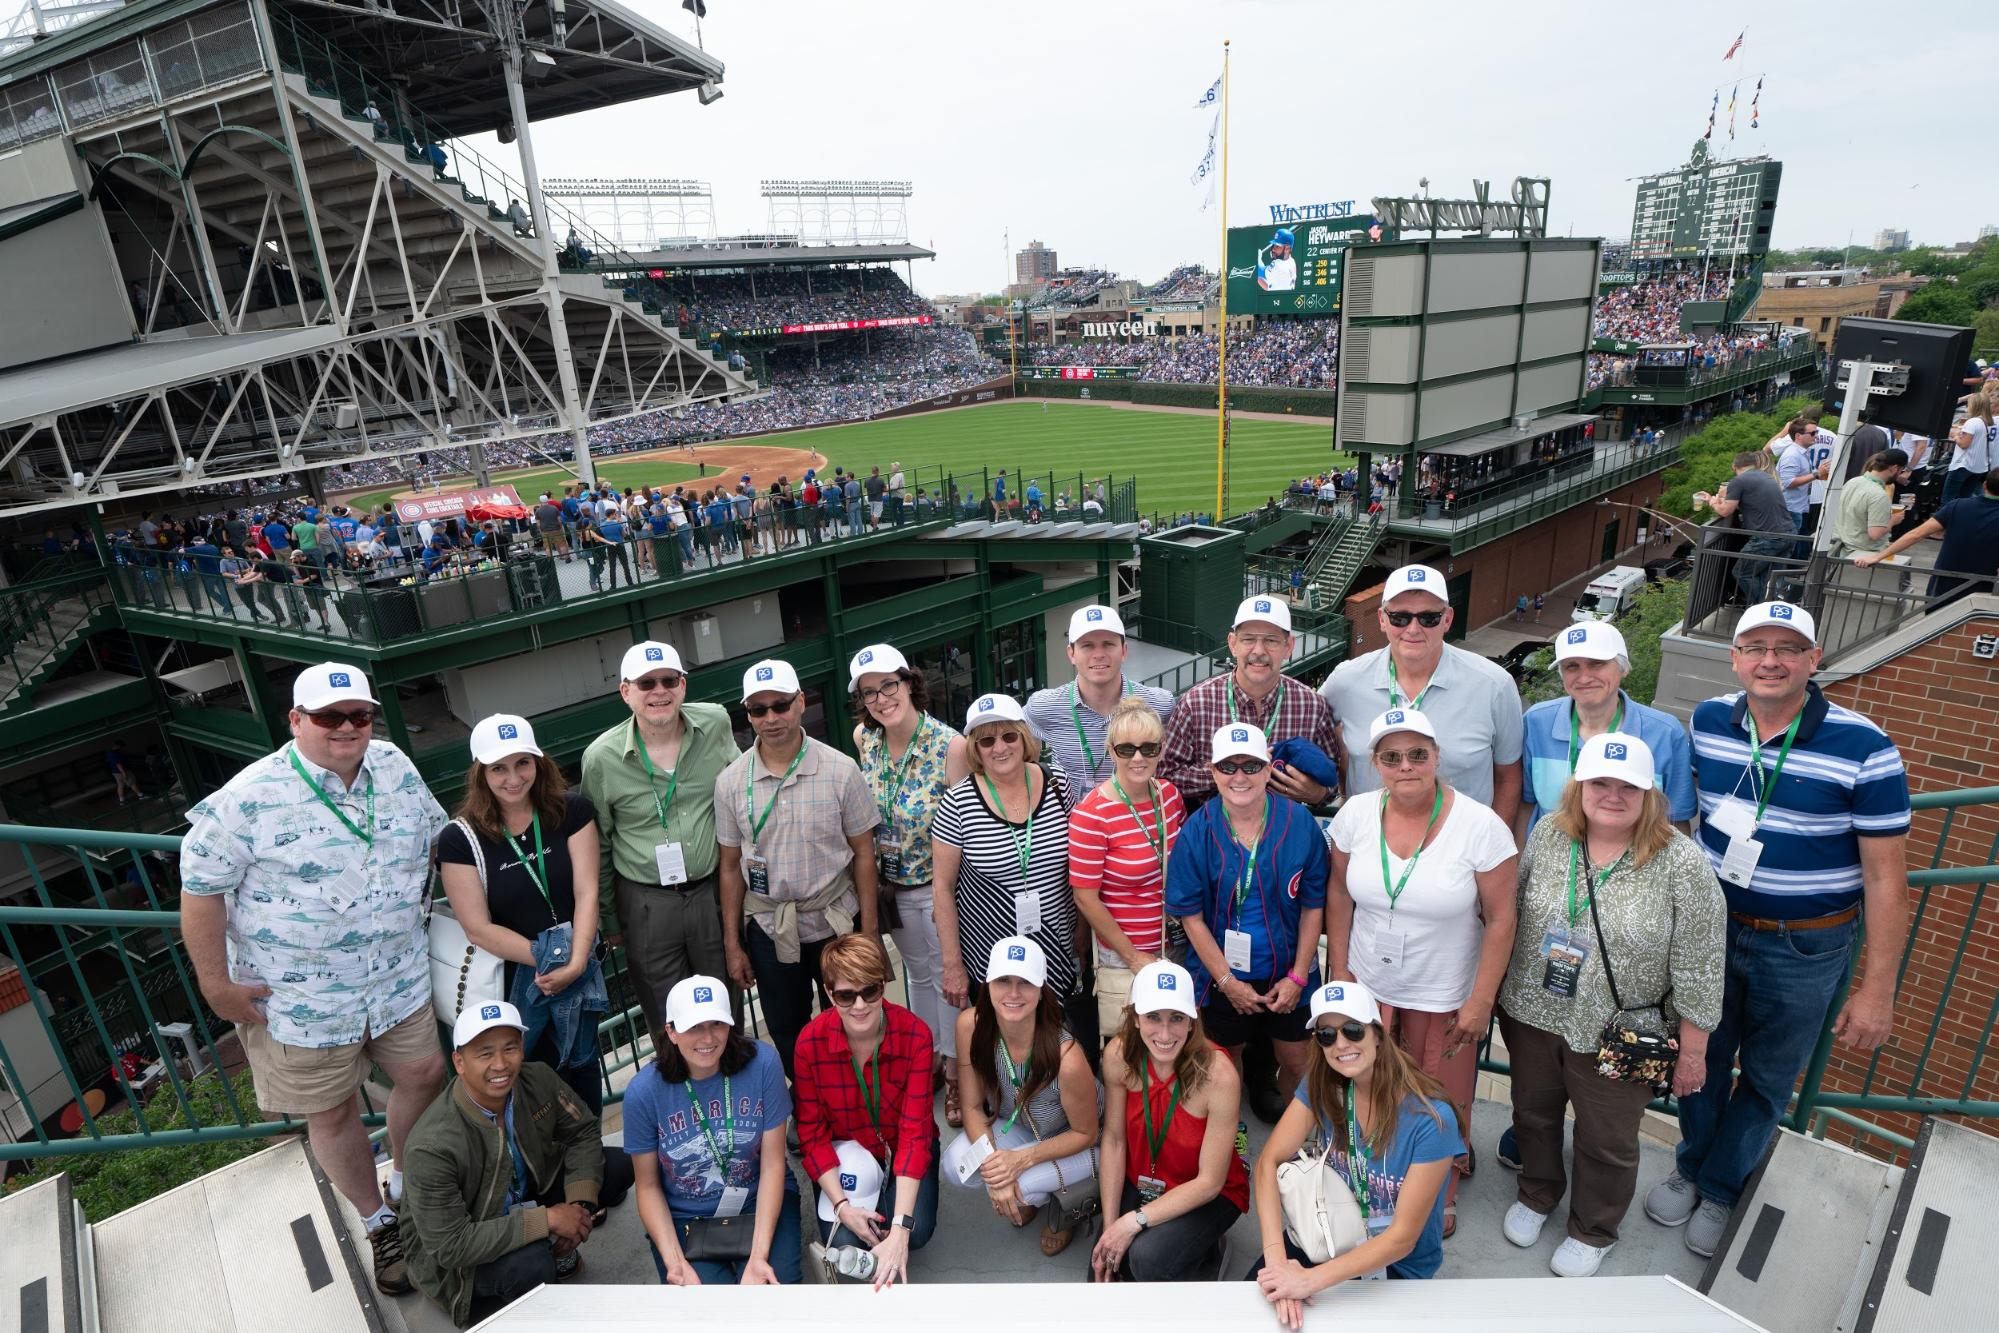 Photo of Preferred Podiatry Group at a baseball game.